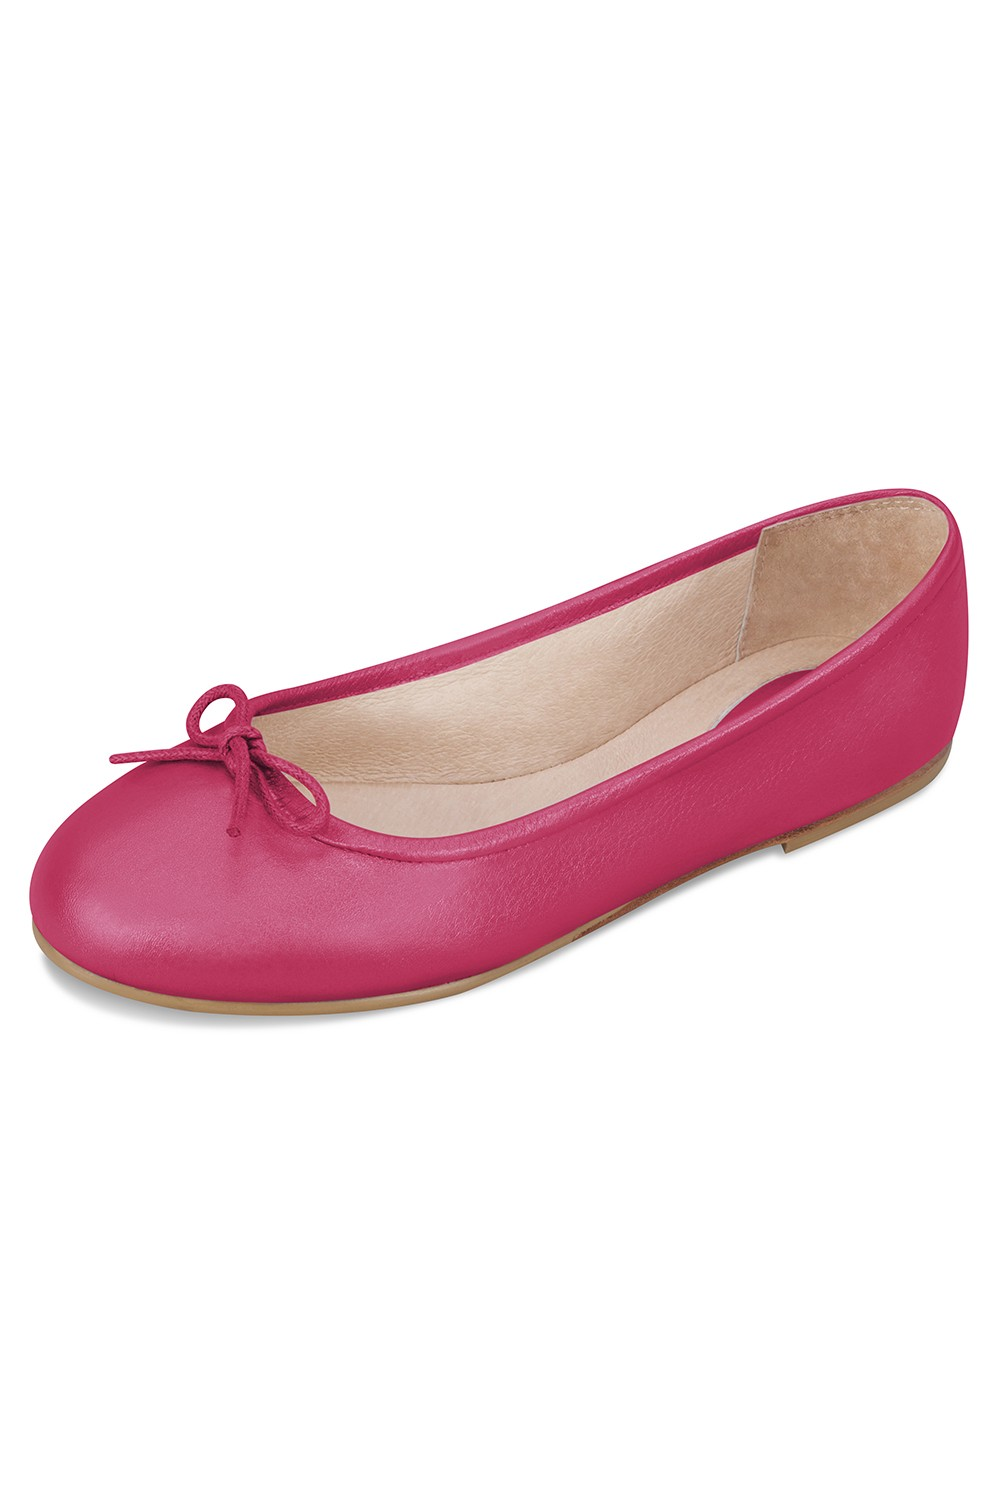 Arabella - Fille Girls Fashion Shoes